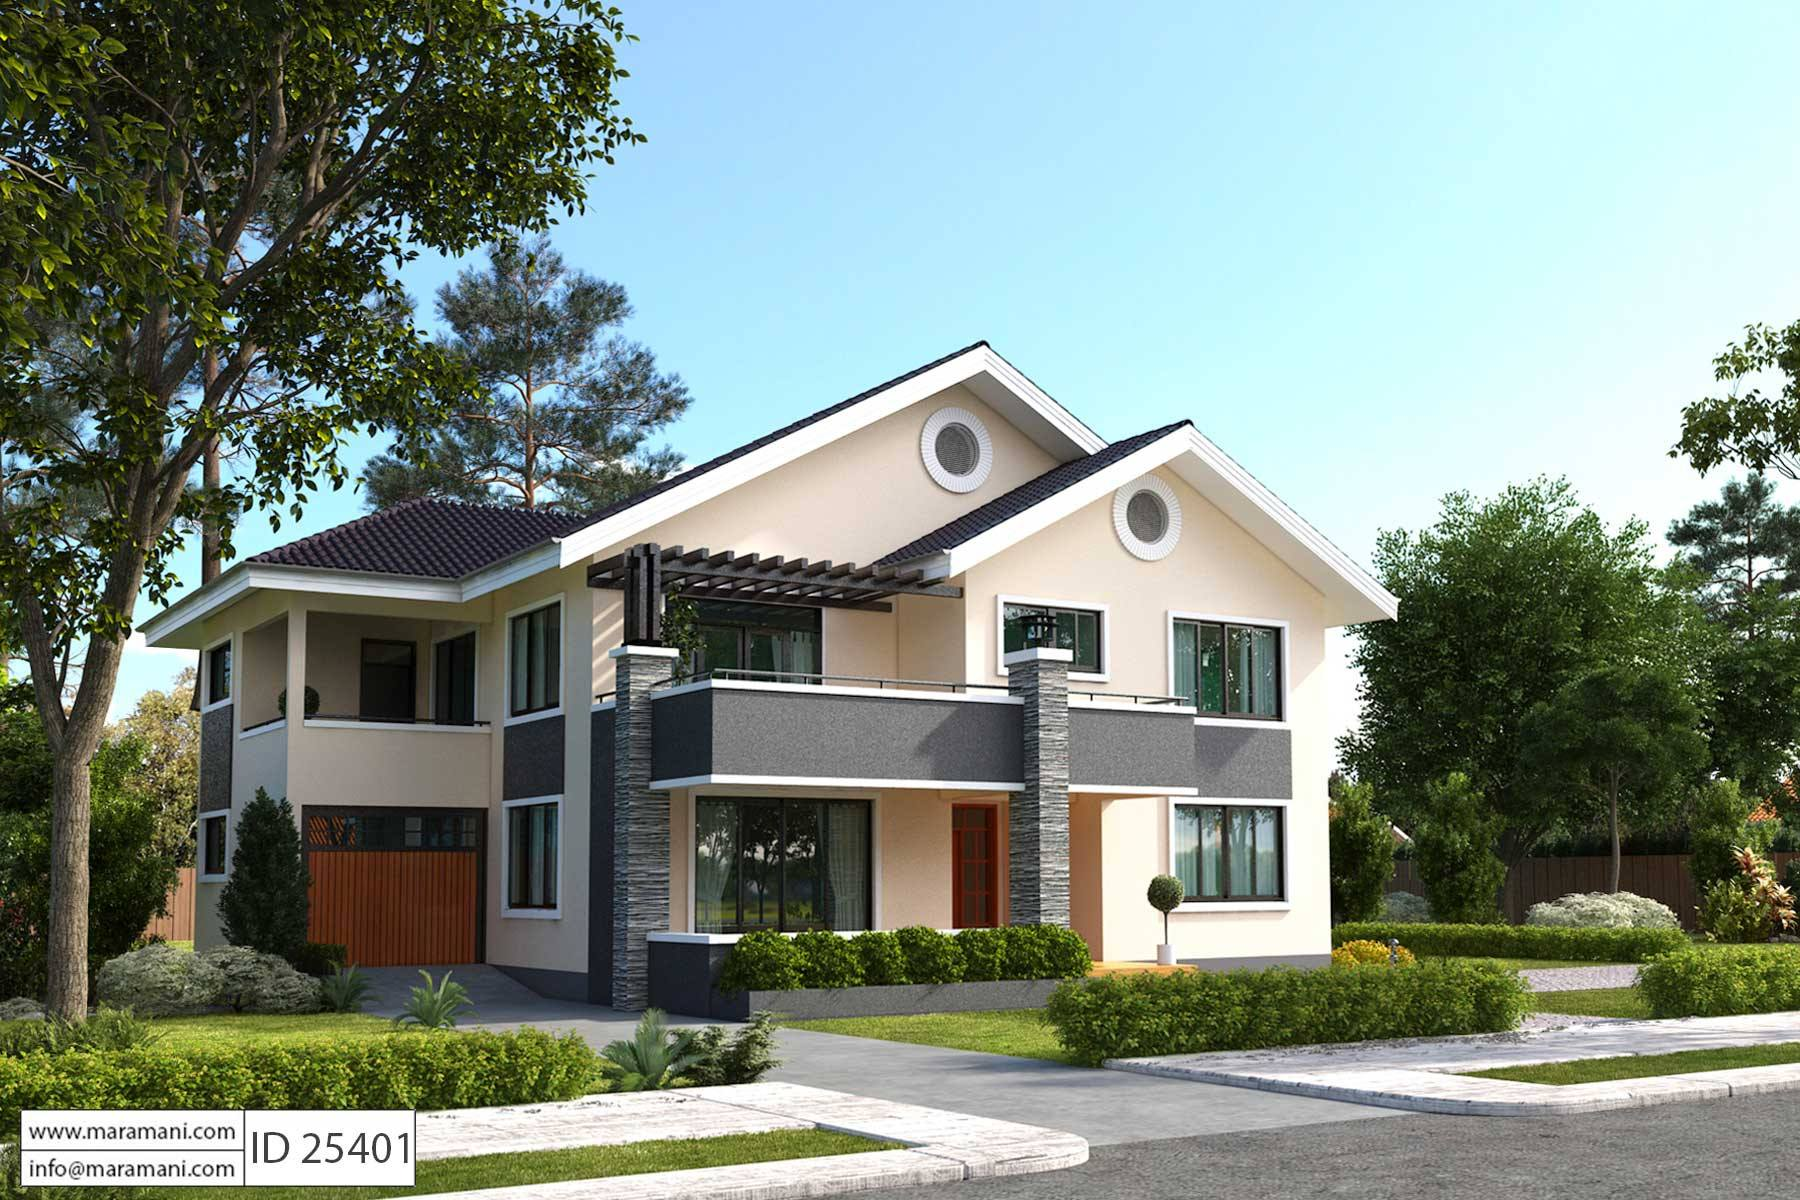 5 bedroom house plan id 25401 floor plans by maramani for Five bedroom house